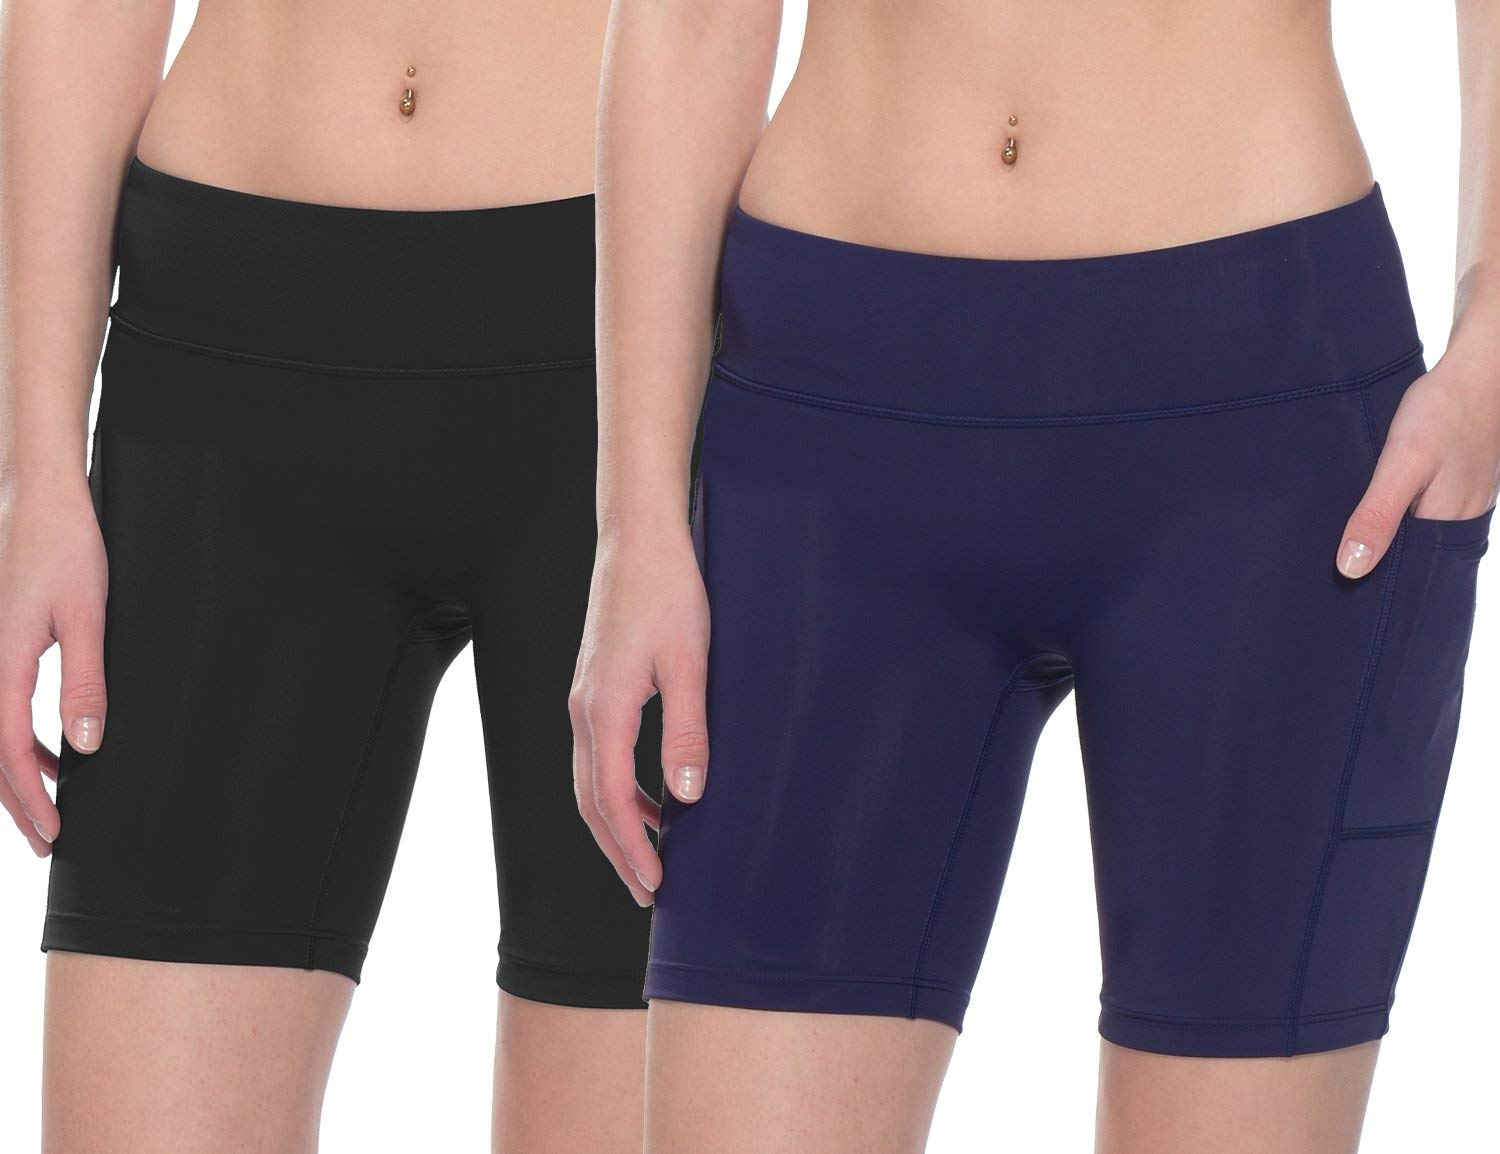 Baleaf Women's 7 Inches Workout Running Shorts Yoga Comprssion Shorts Side Pockets 2 Packs Black/Navy Blue Size XL by Baleaf